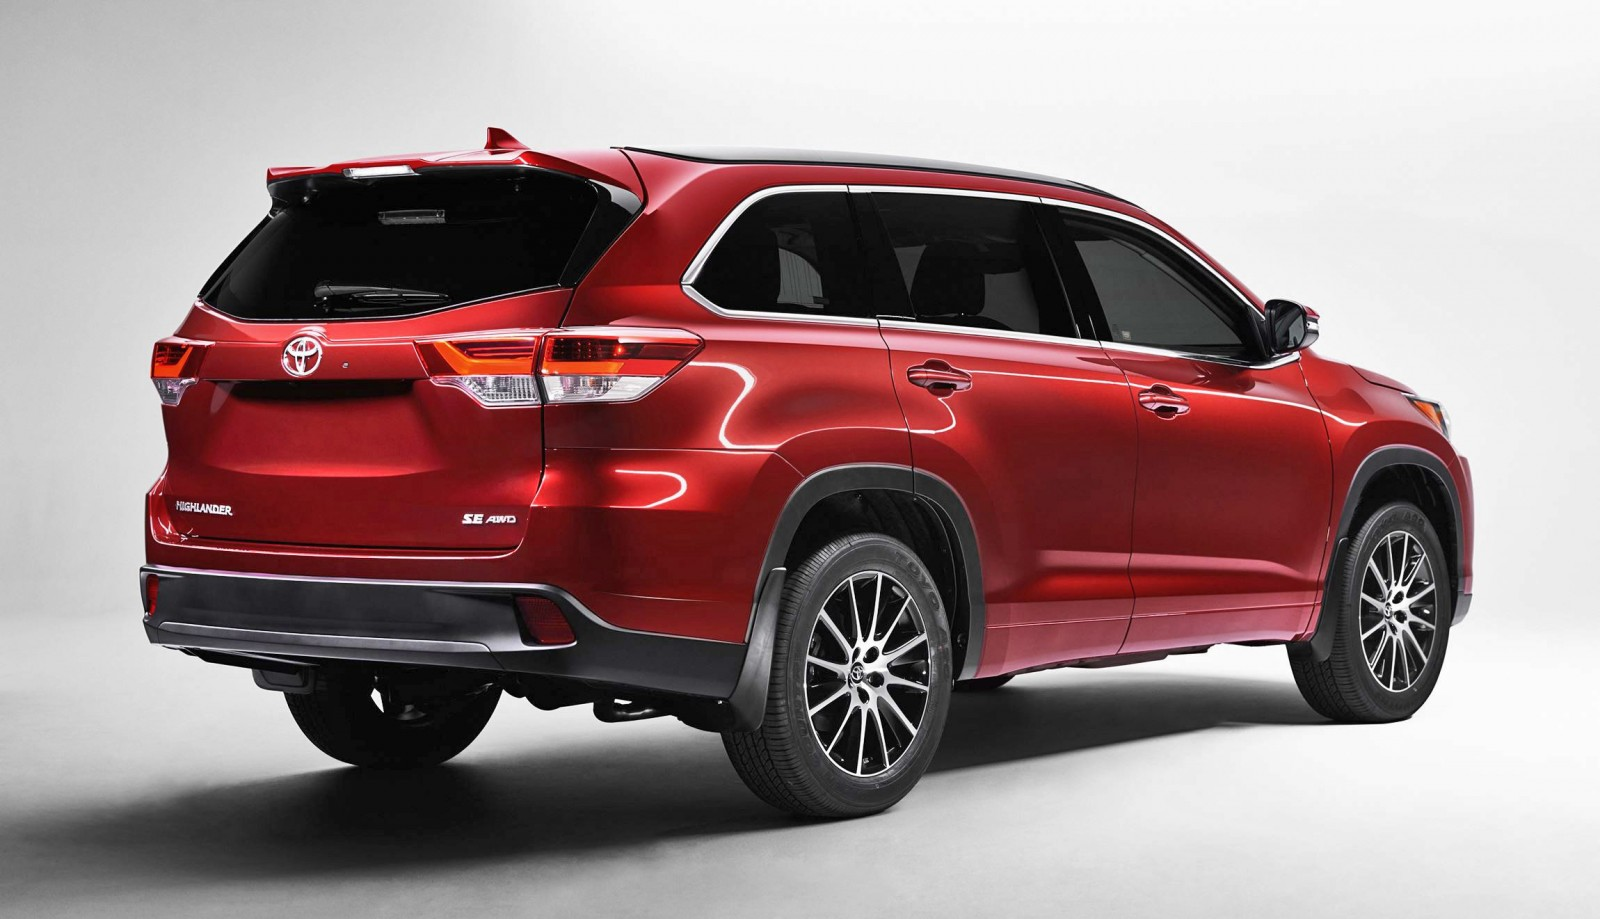 2017 toyota highlander preview revised styling new v6 and 8 speed automatic car revs. Black Bedroom Furniture Sets. Home Design Ideas